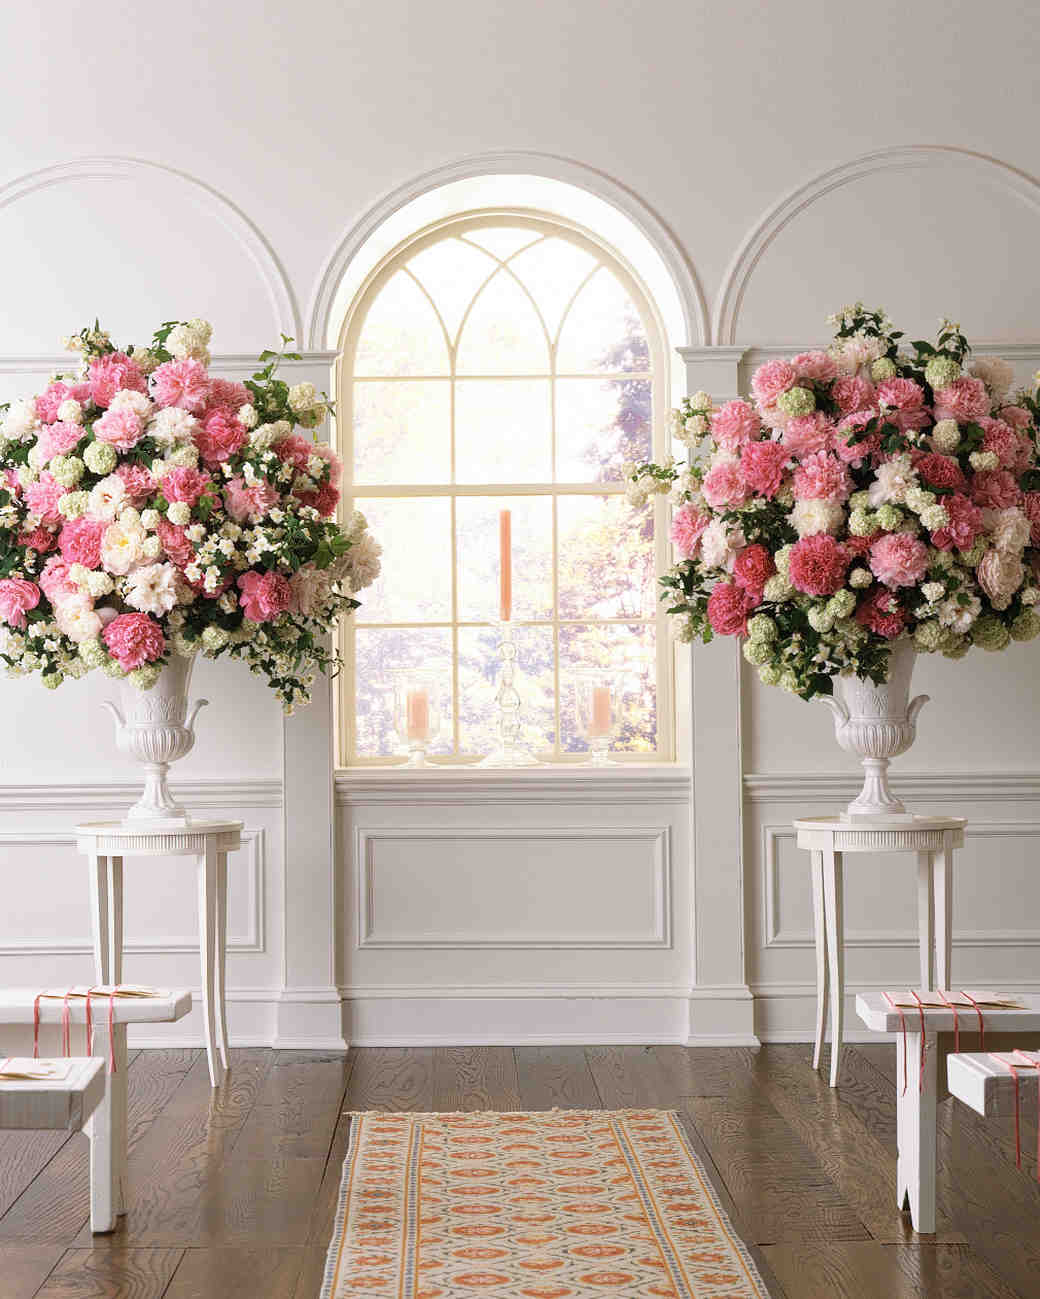 Pictures Of Wedding Altar Flower Arrangements: Peony-Inspired Wedding Ideas